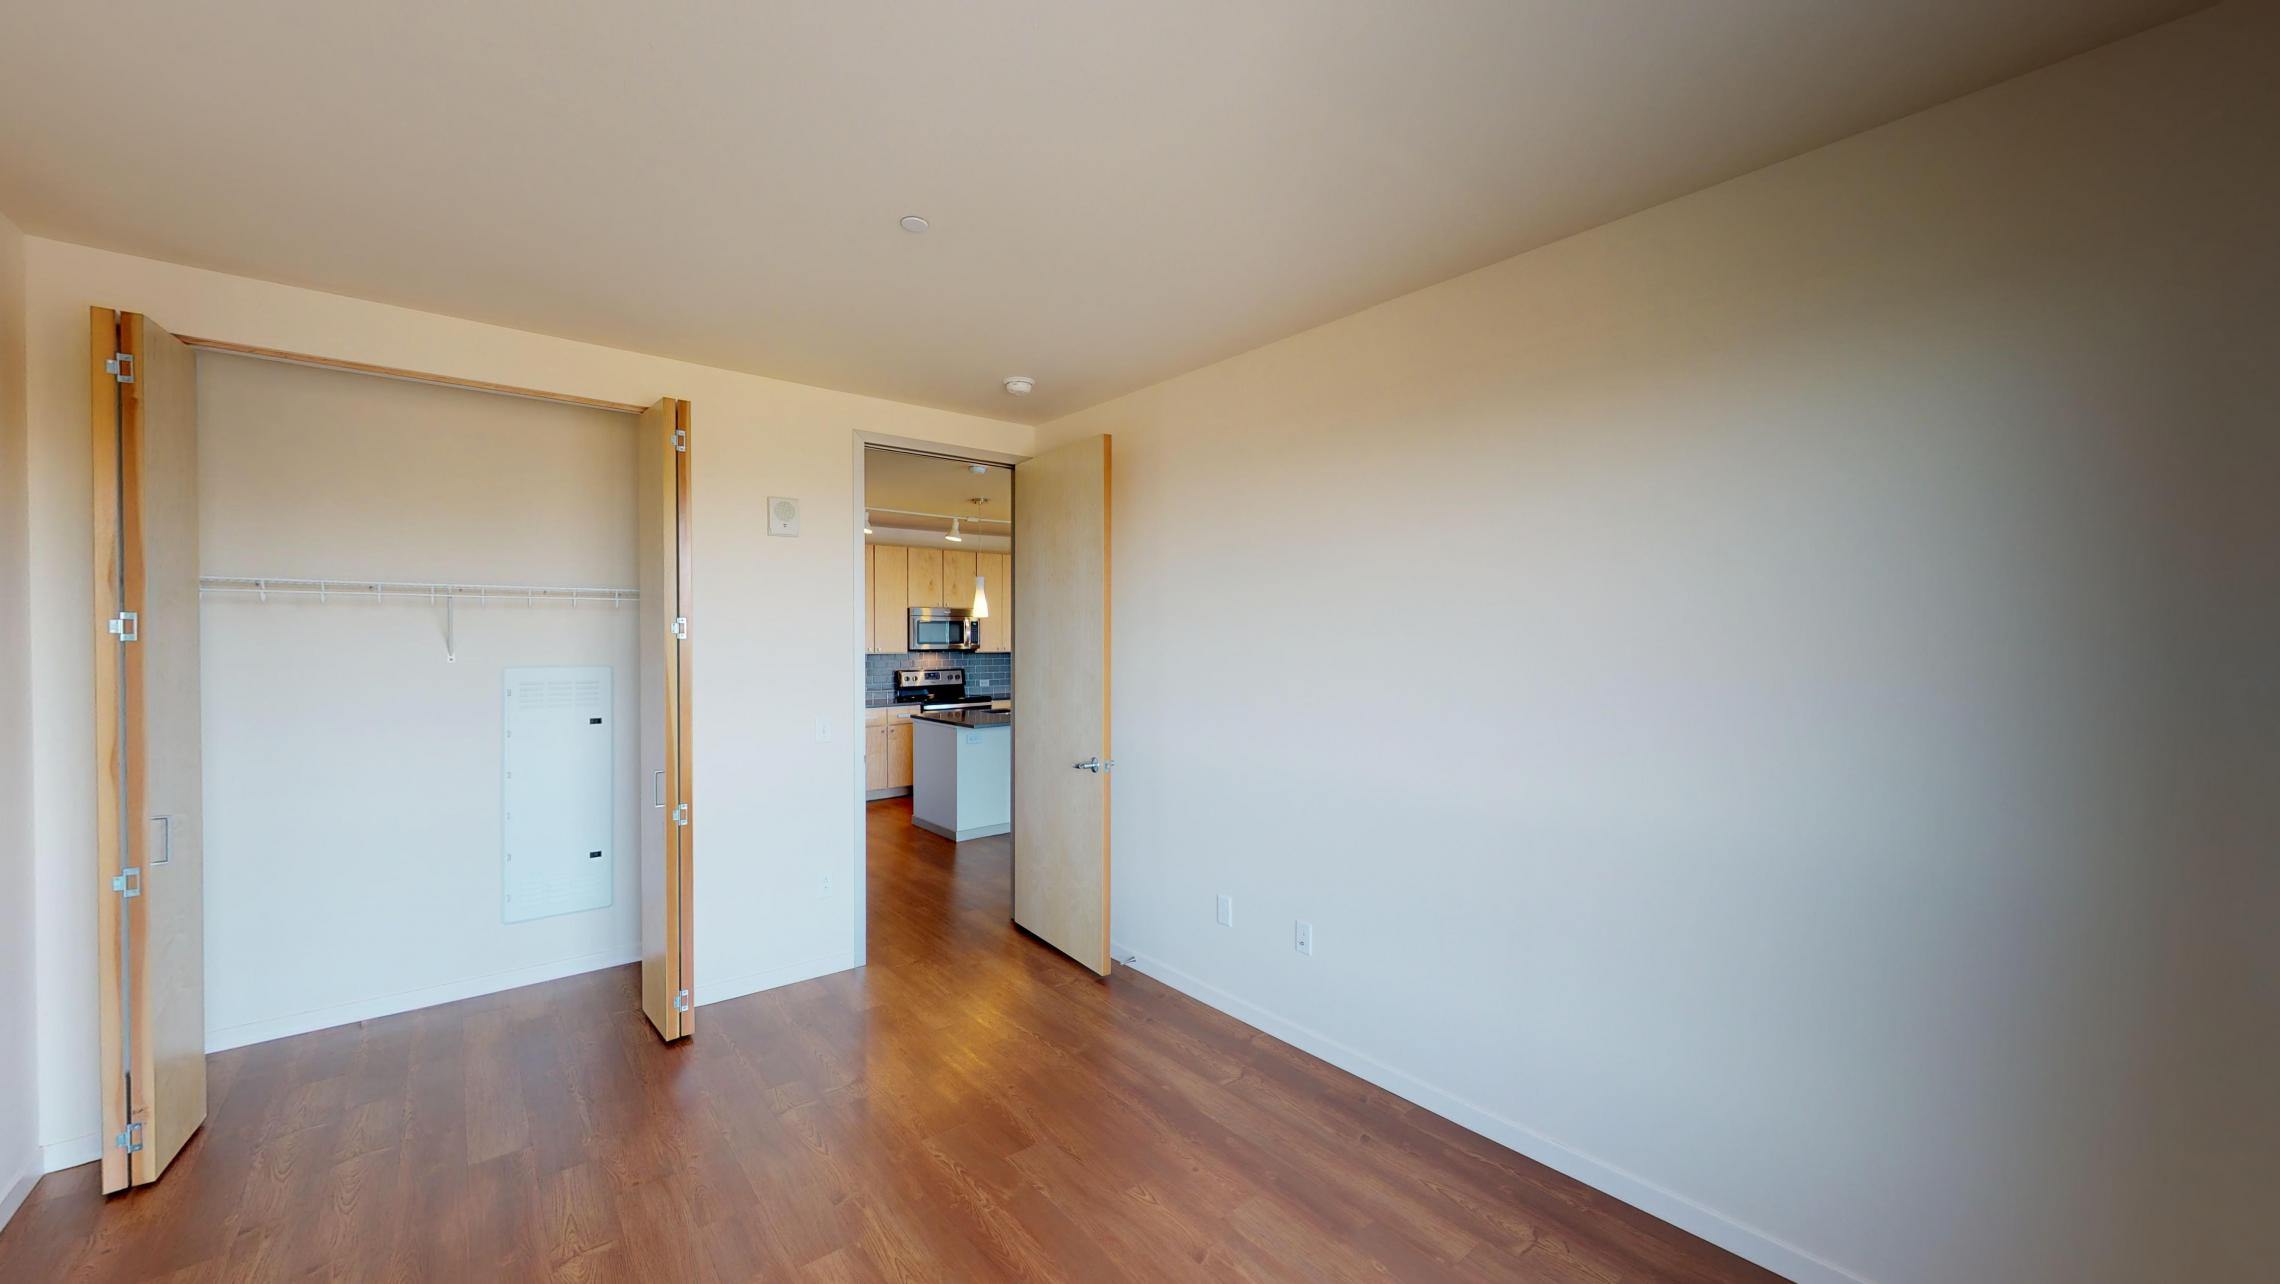 Nine-Line-Apartment-517-bedroom-closet-upscale-high end-modern-lifestyle-lake-view-capitol-downtown.jpg